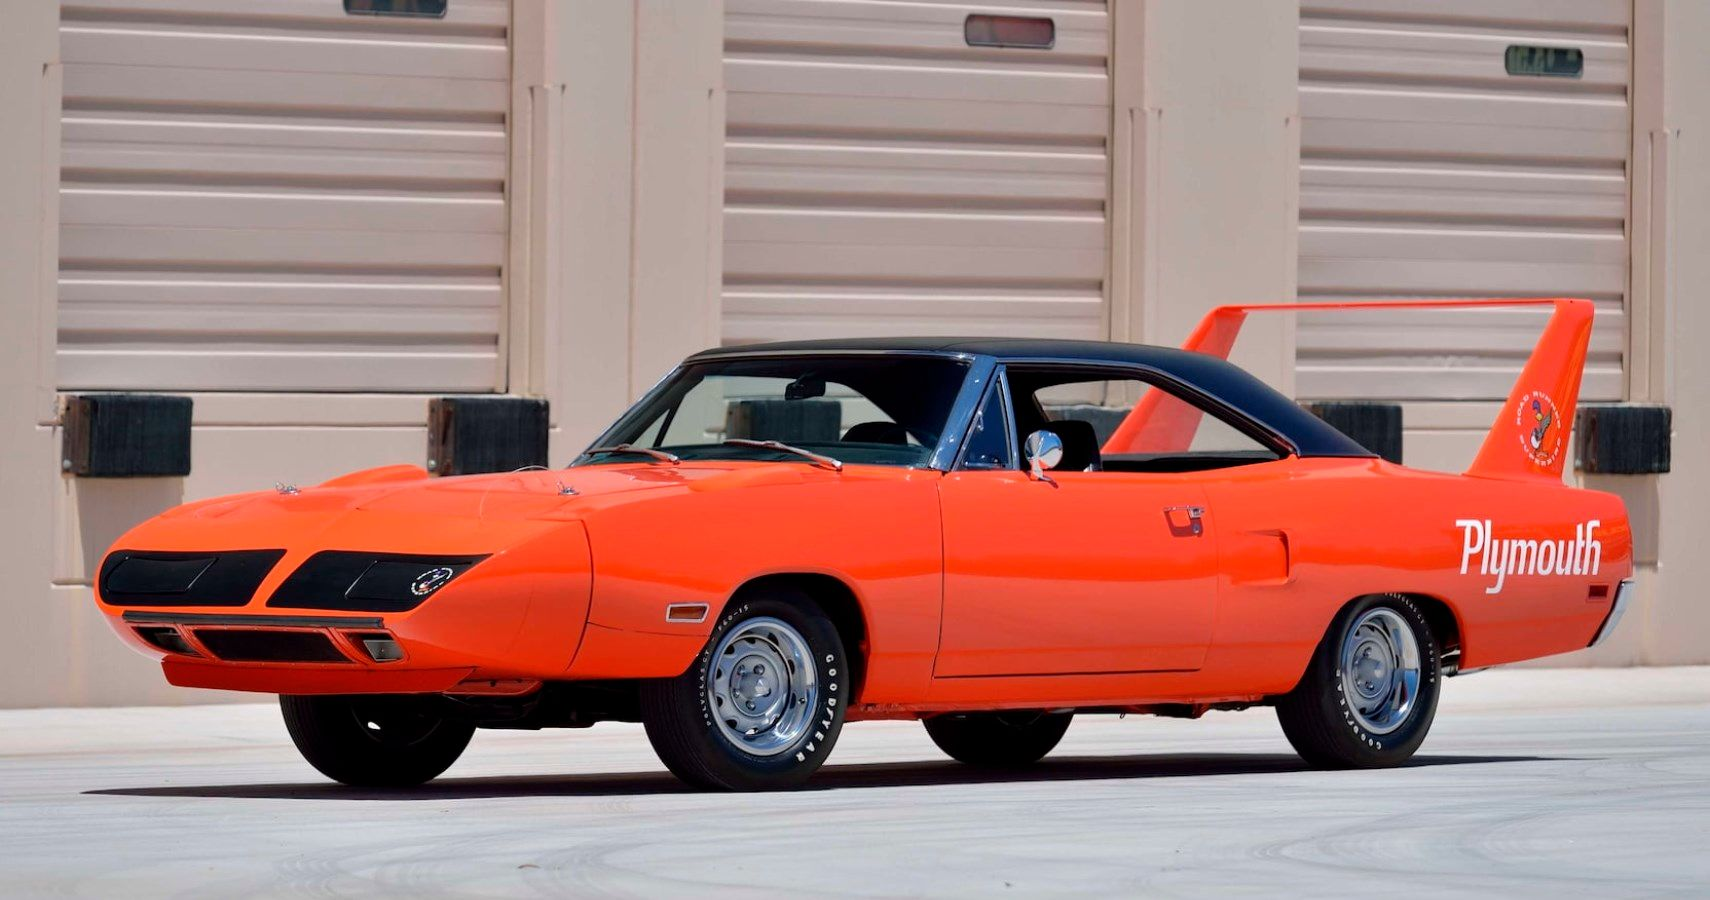 Check Out This Stunning 1970 Plymouth Superbird On Mecum